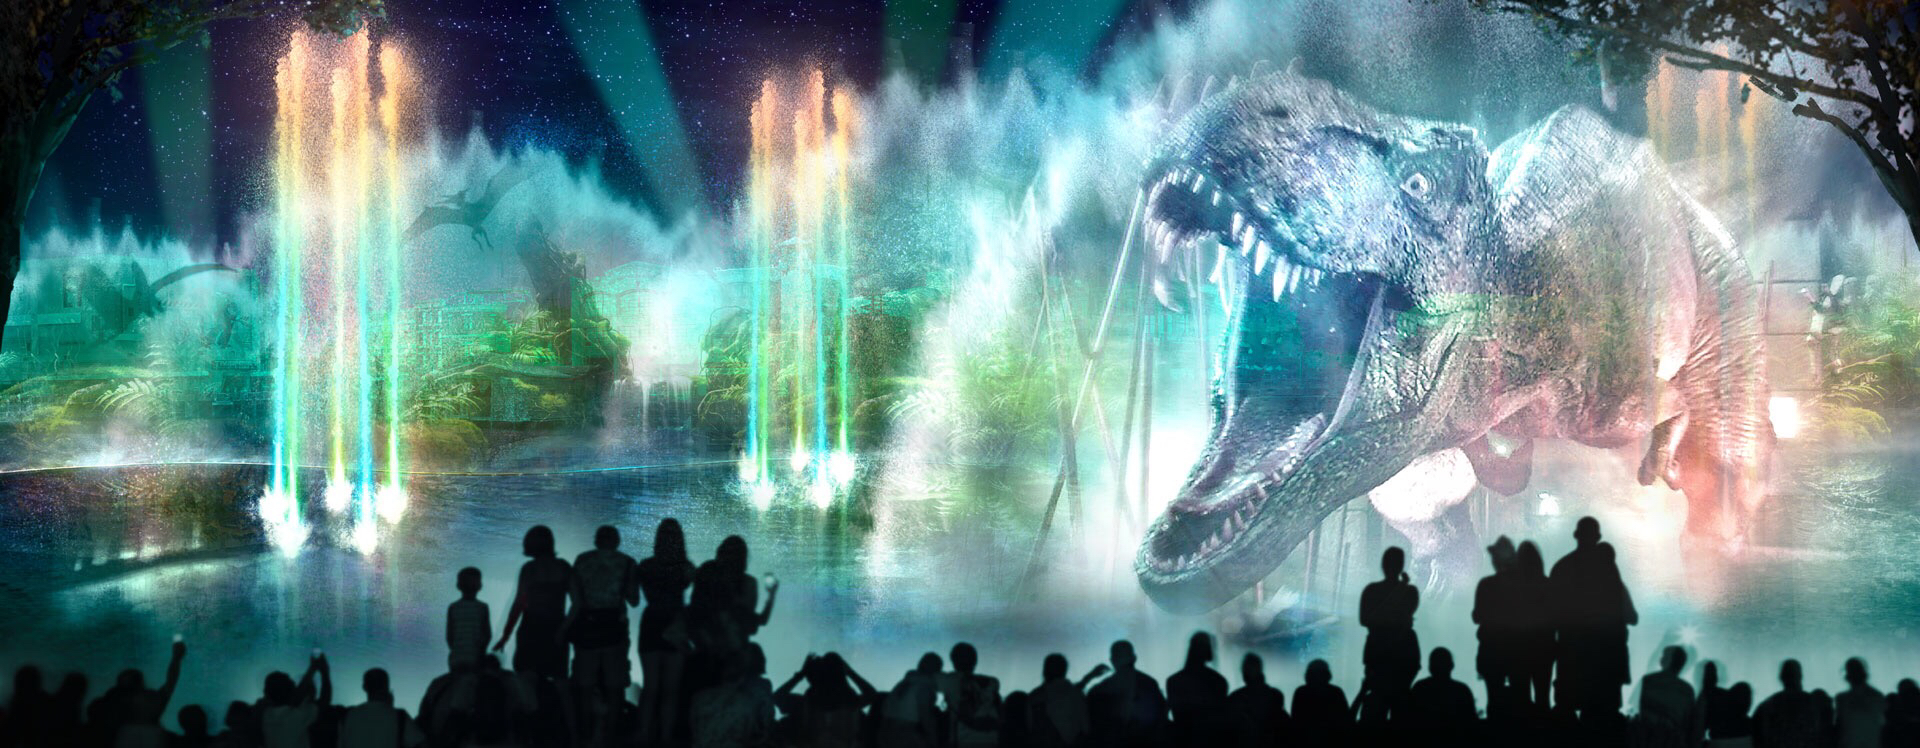 Universal Orlando's Cinematic Celebration REVEALED